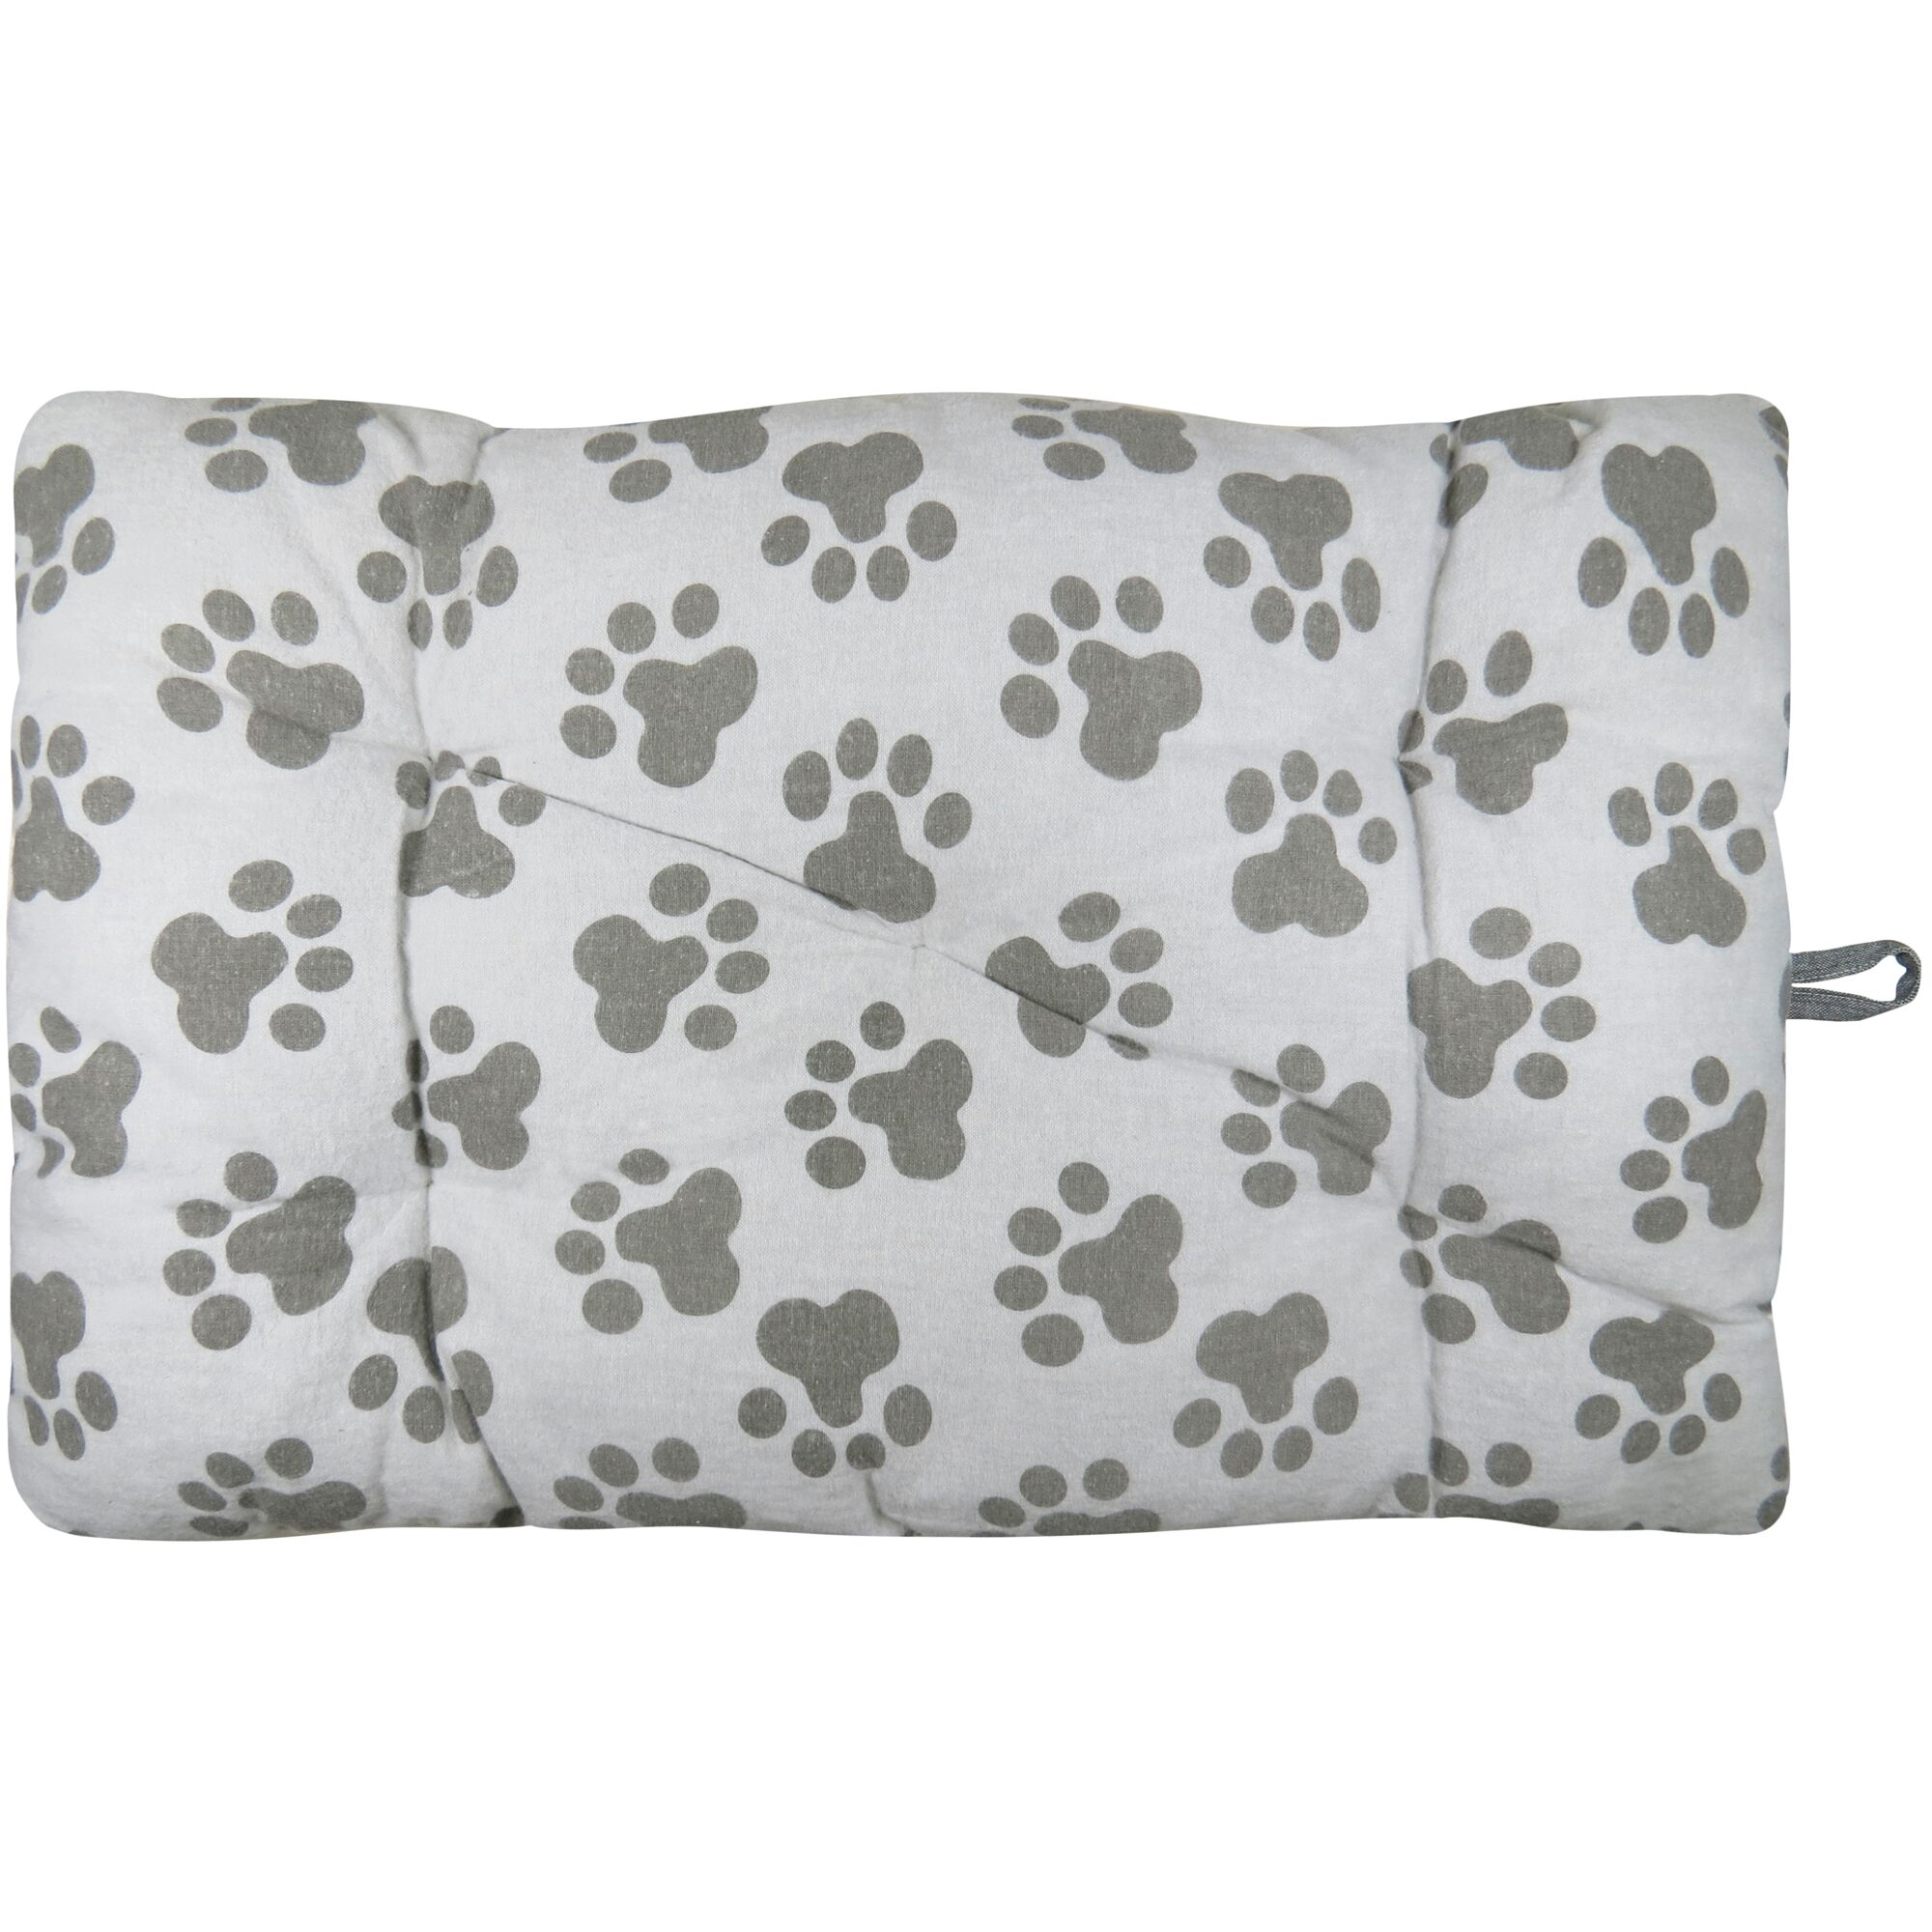 Metro Farmhouse World Paws Crate Futon Mat Color: Linen, Size: 36